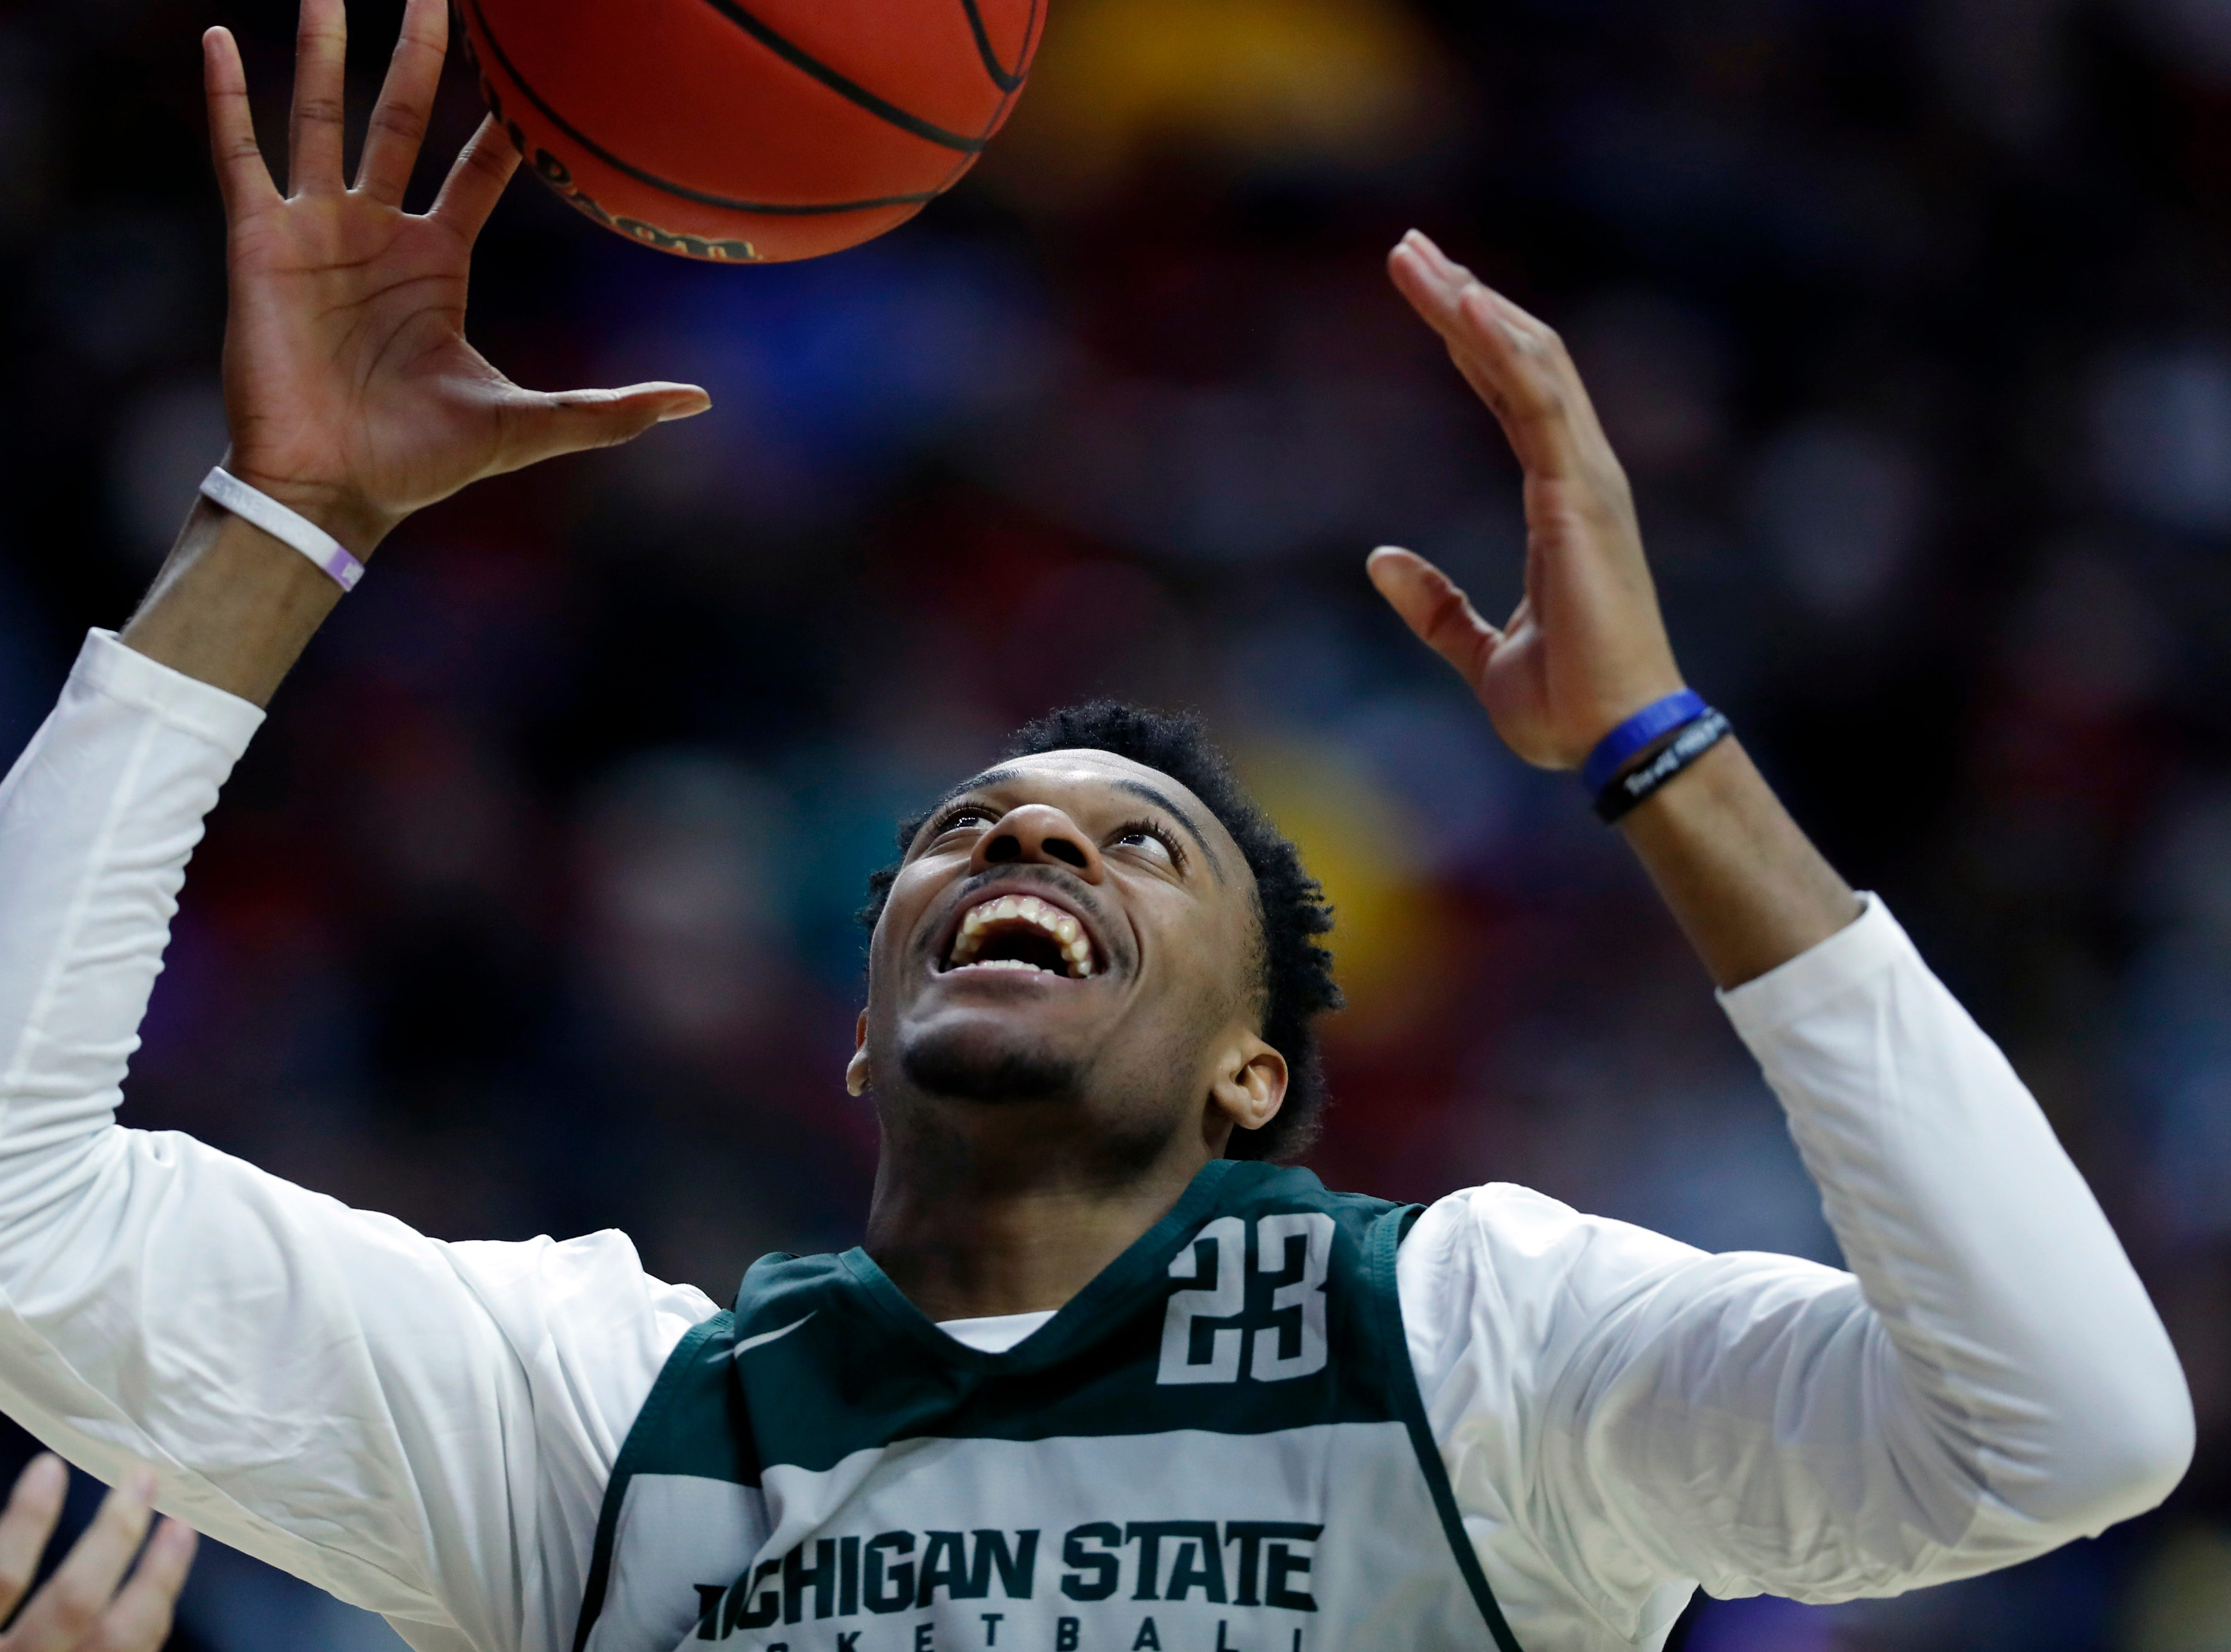 Michigan State forward Xavier Tillman catches a pass during practice at the NCAA men's college basketball tournament, Wednesday, March 20, 2019, in Des Moines, Iowa. Michigan State plays Bradley on Thursday. (AP Photo/Charlie Neibergall)